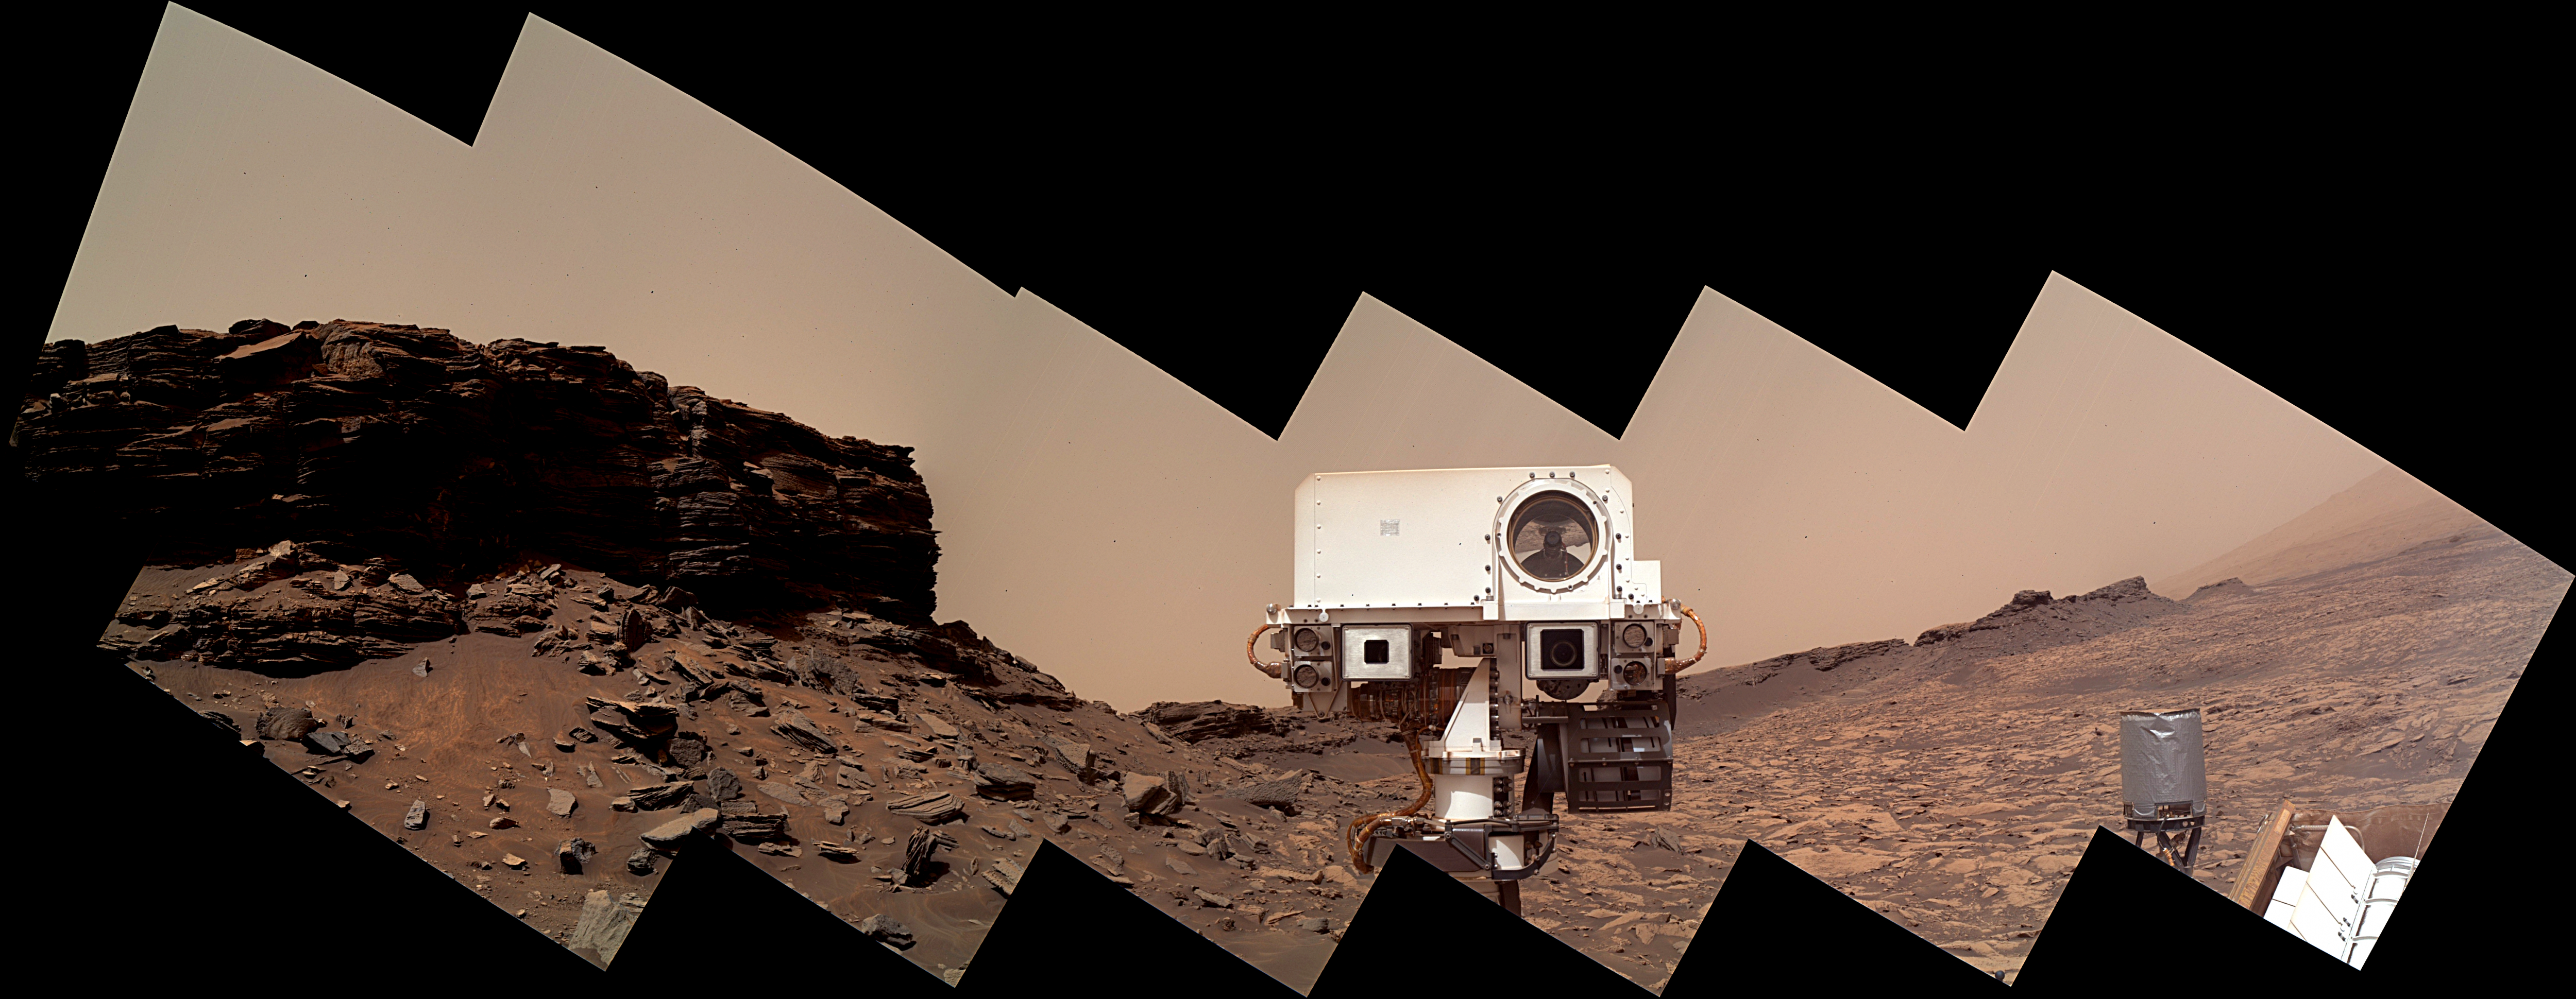 panoramic-curiosity-rover-view-mahli-1e-sol-1463-was-life-on-mars